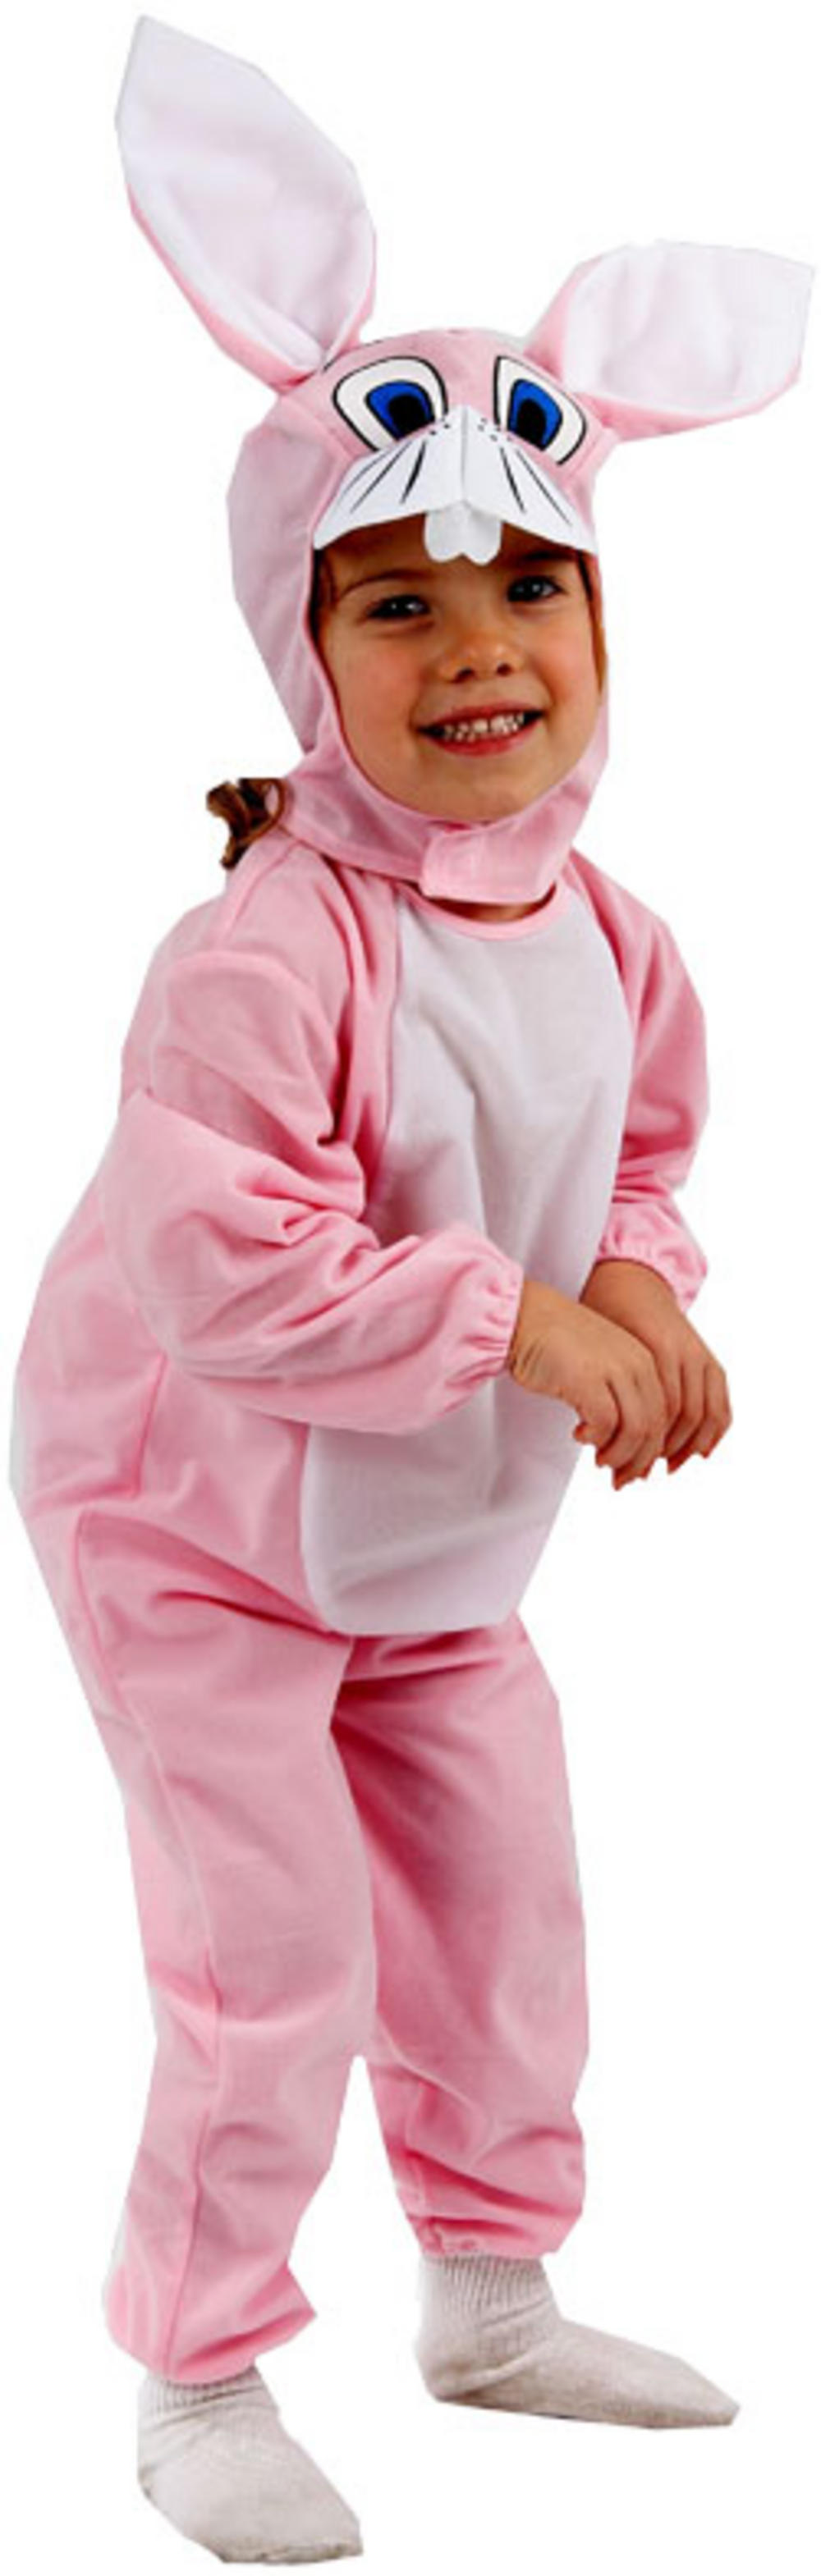 Rabbit costumes are very much admired by kids and adults both. It gives a sweet glance to the kids and funny view to the adults. A rabbit costume is made of velvet .